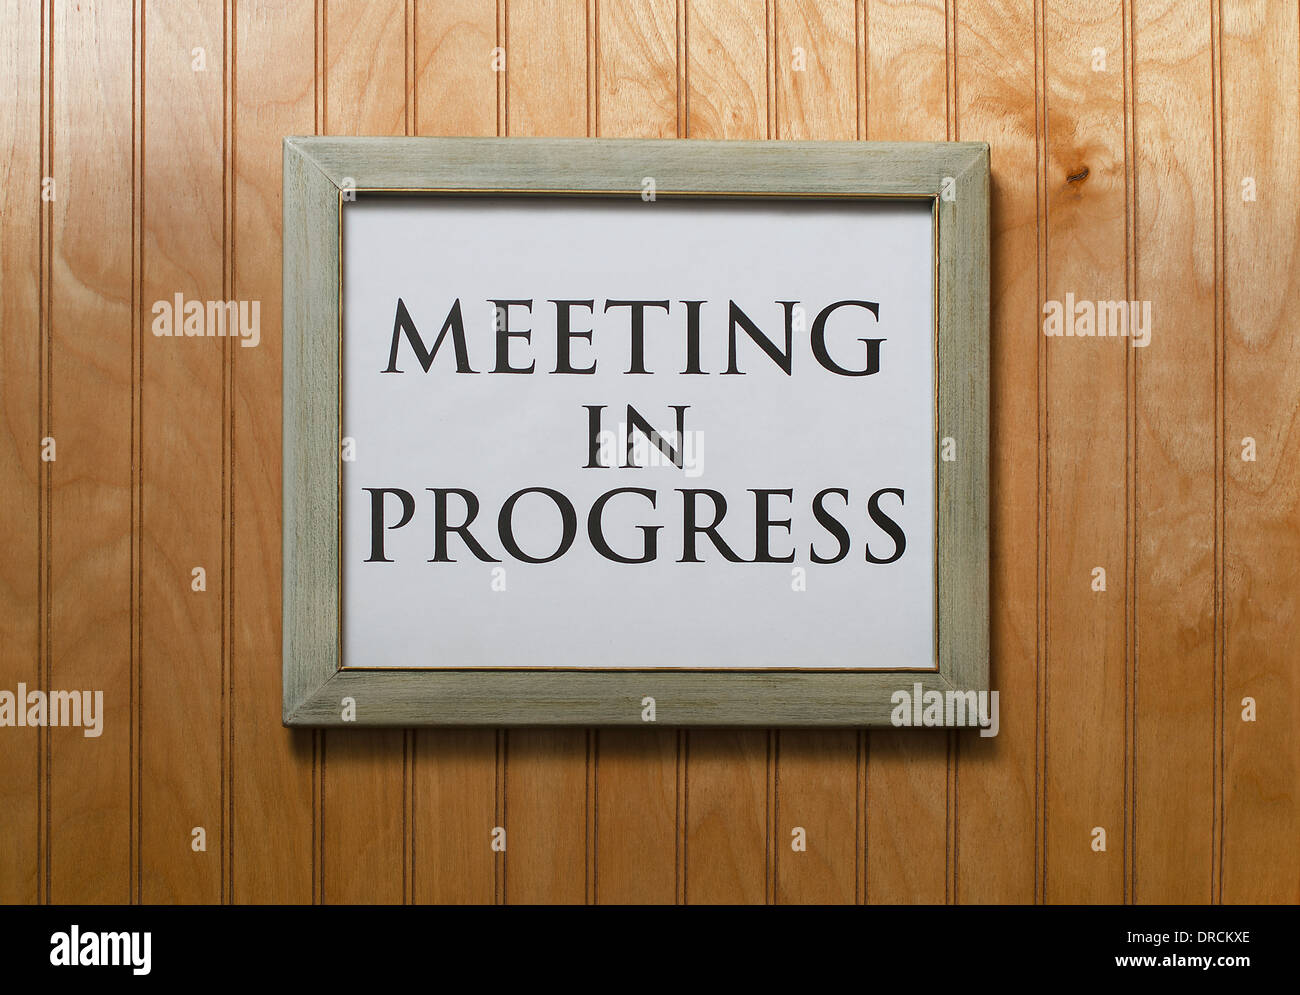 meeting in progress sign on wall - Stock Image